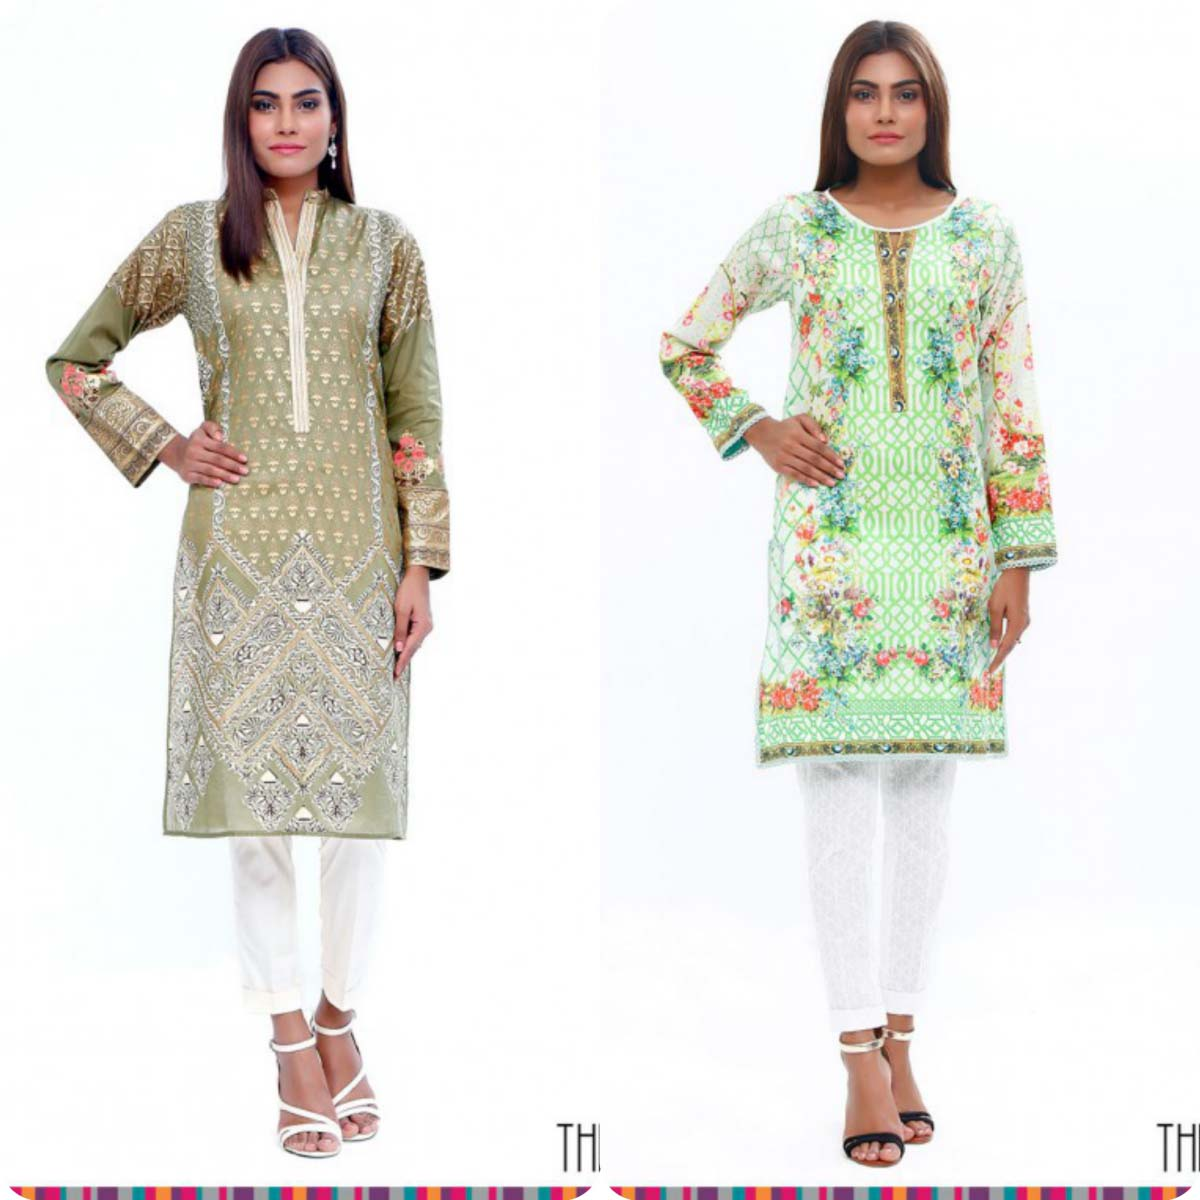 Stylish Embroidered Eid KurtisTunics for Girls By THREDZ 2016-2016 Complete Look-Book (9)